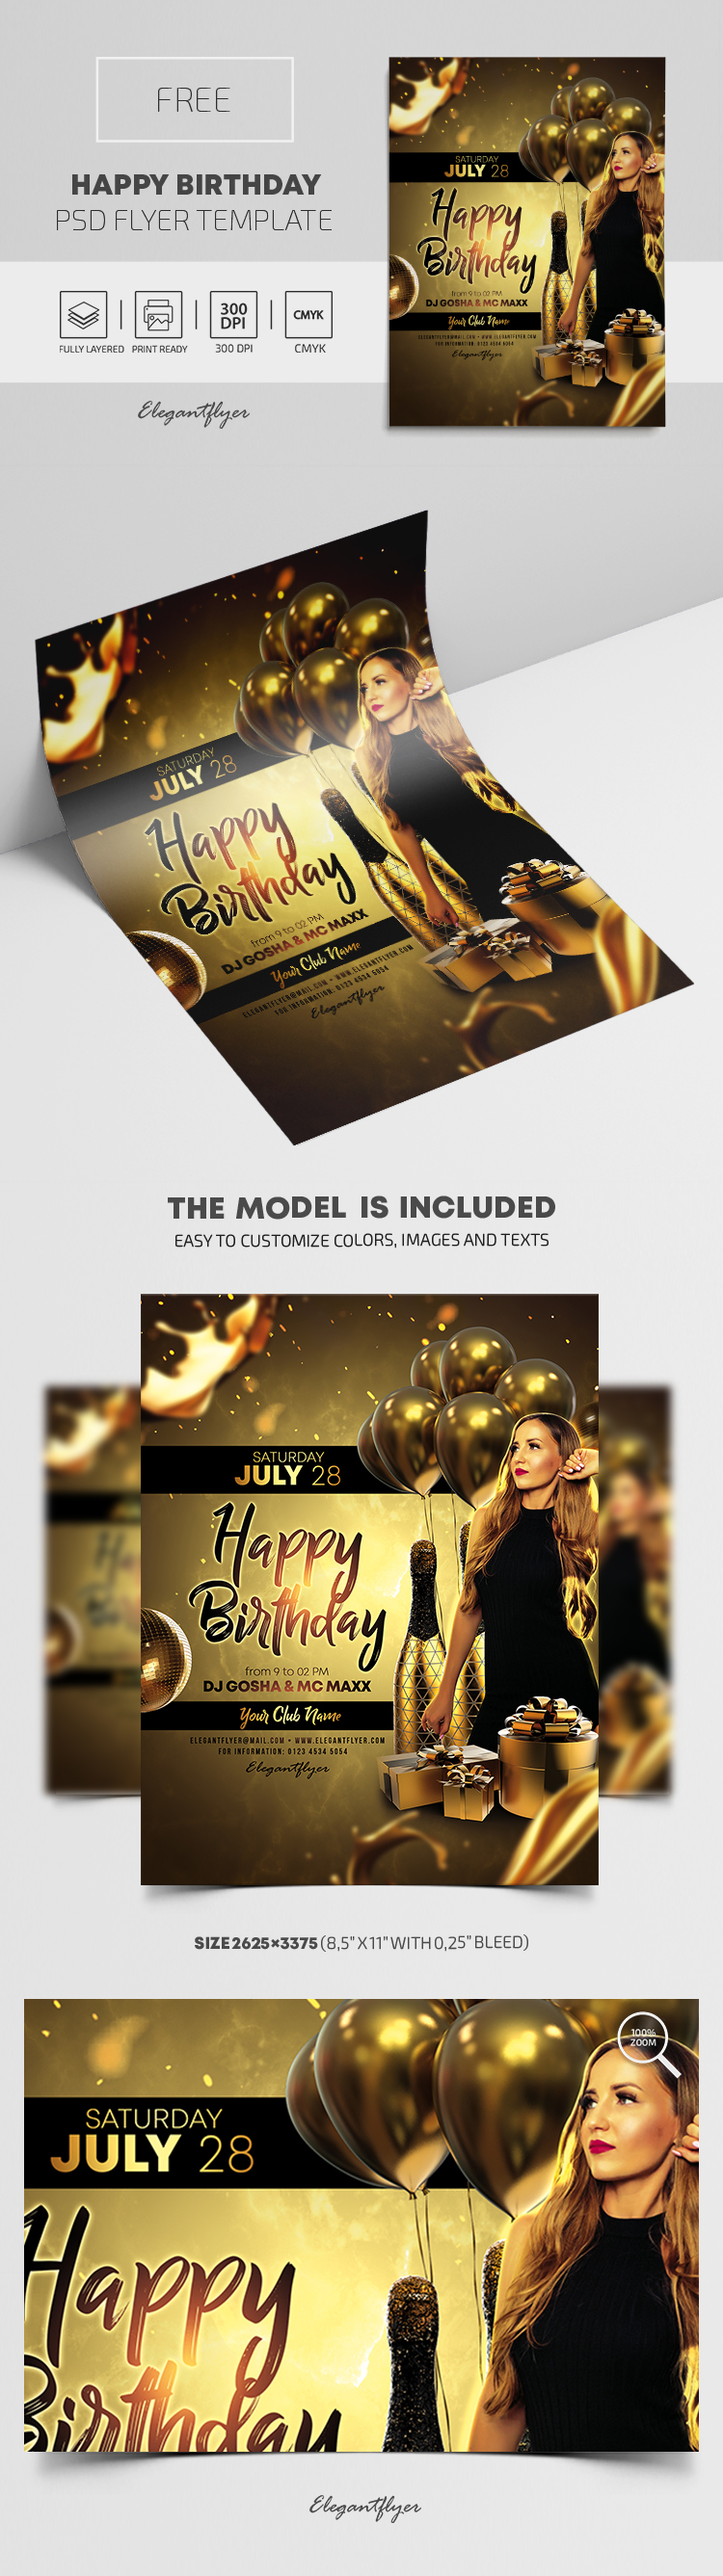 Happy Birthday – Free PSD Flyer Template